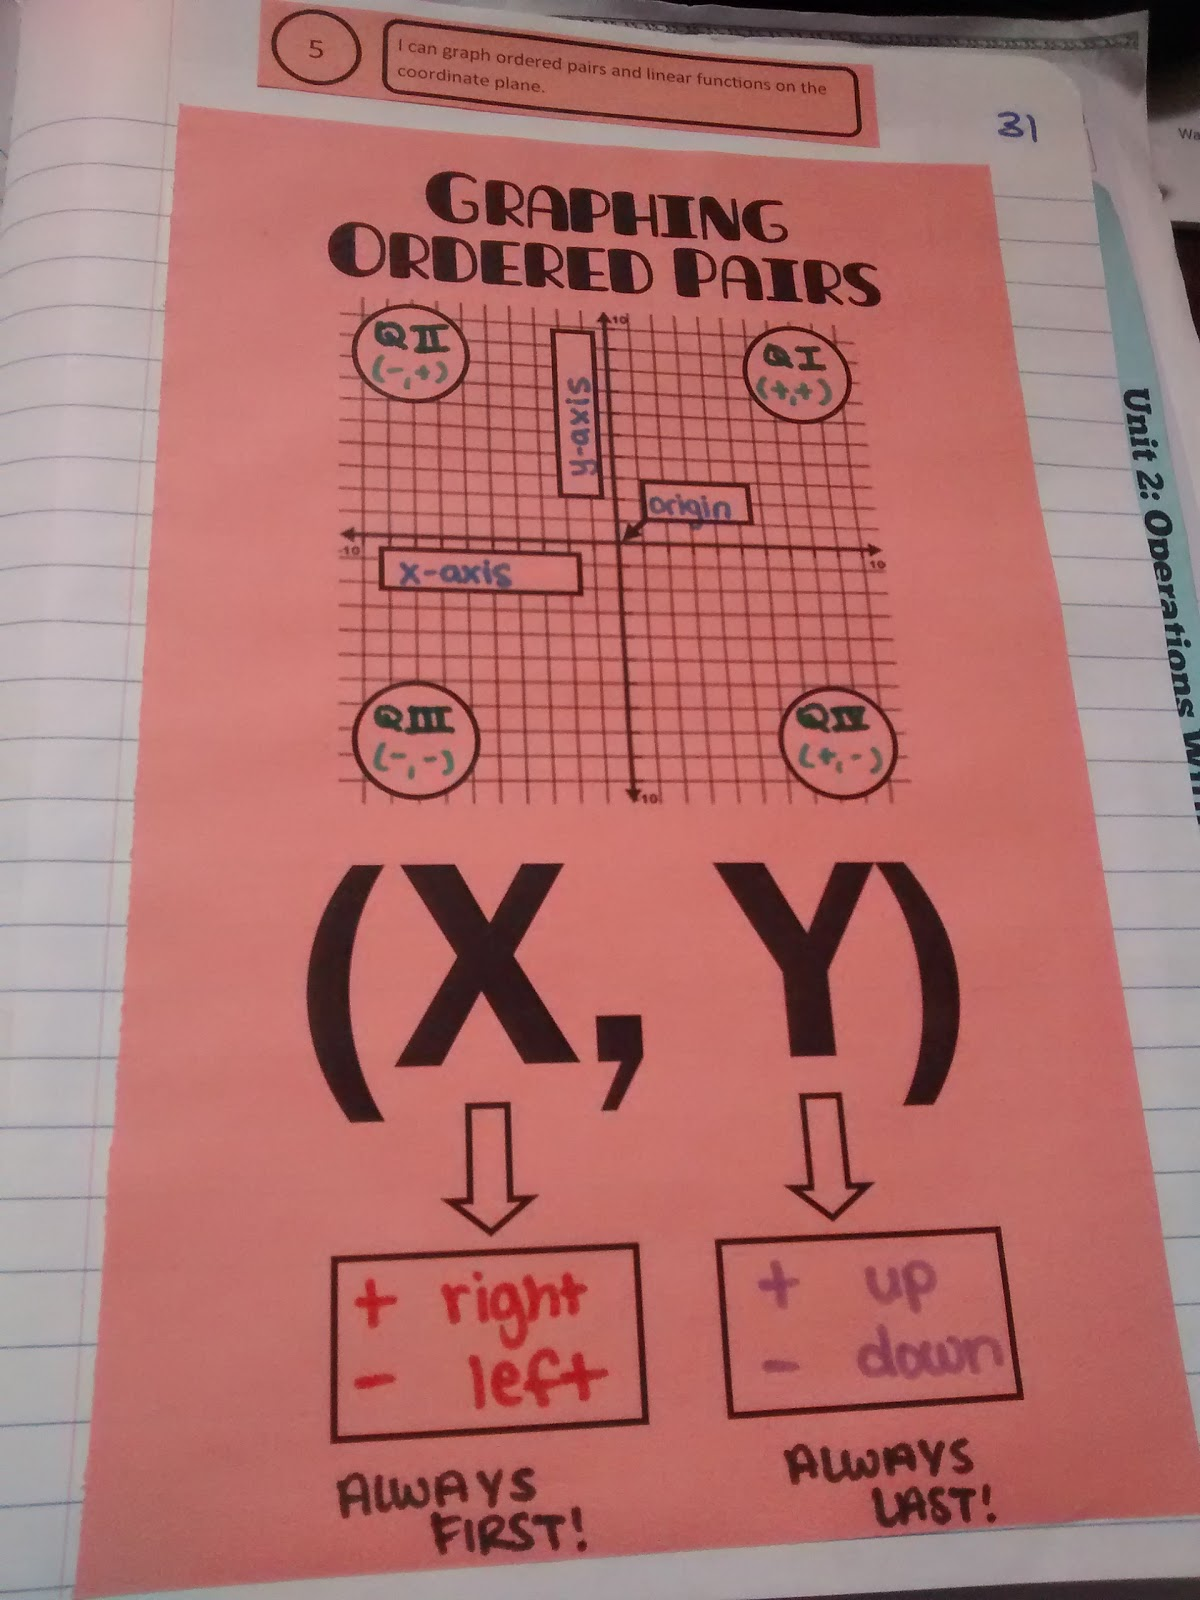 worksheet Ordered Pairs Pictures math love graphing ordered pairs and linear functions then i gave my students a coordinate picture from worksheetworks com looked bit different one of students